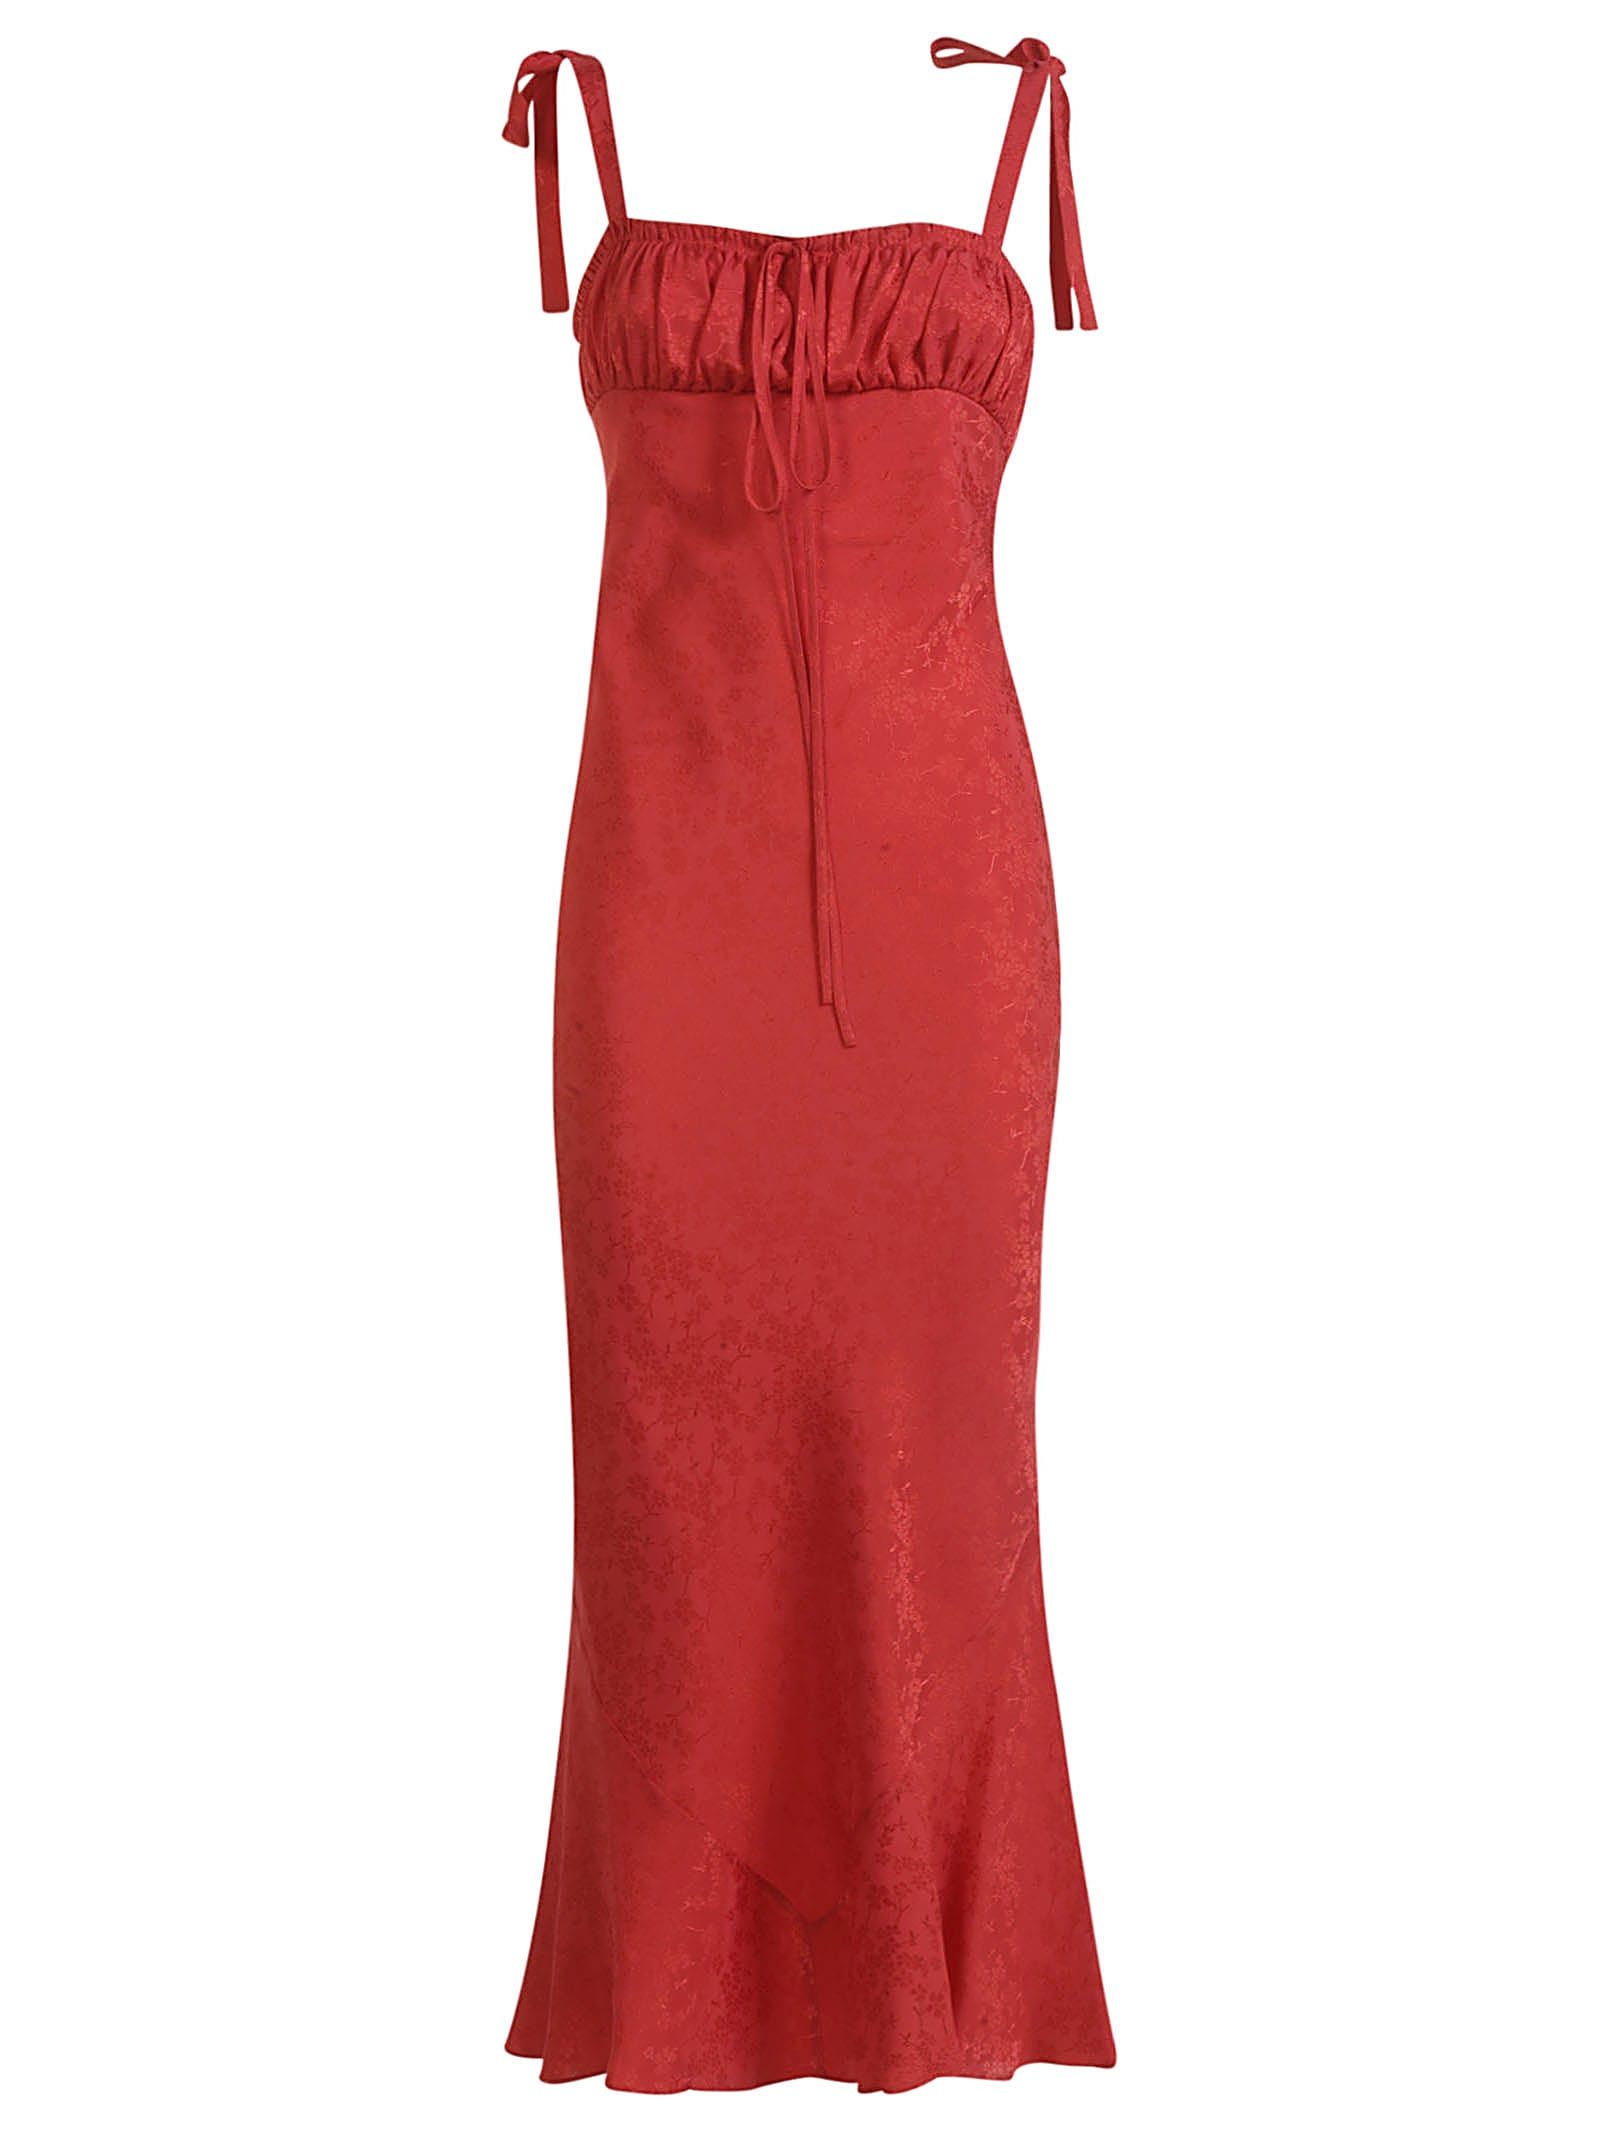 Wandering Jacquard Midy Dress In Red